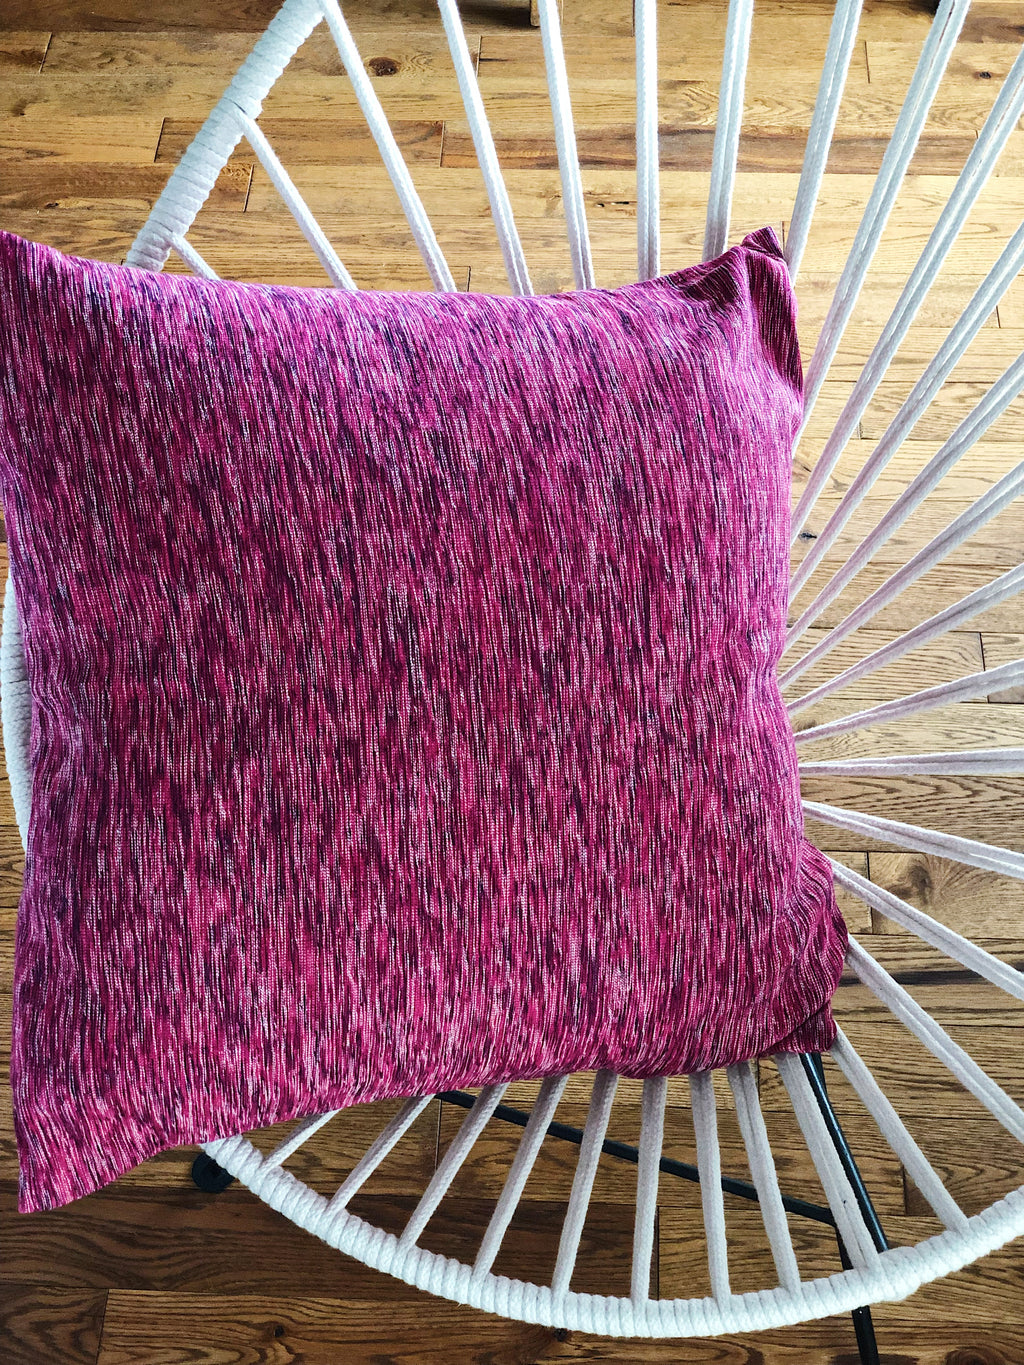 The Xalapa cushion cover